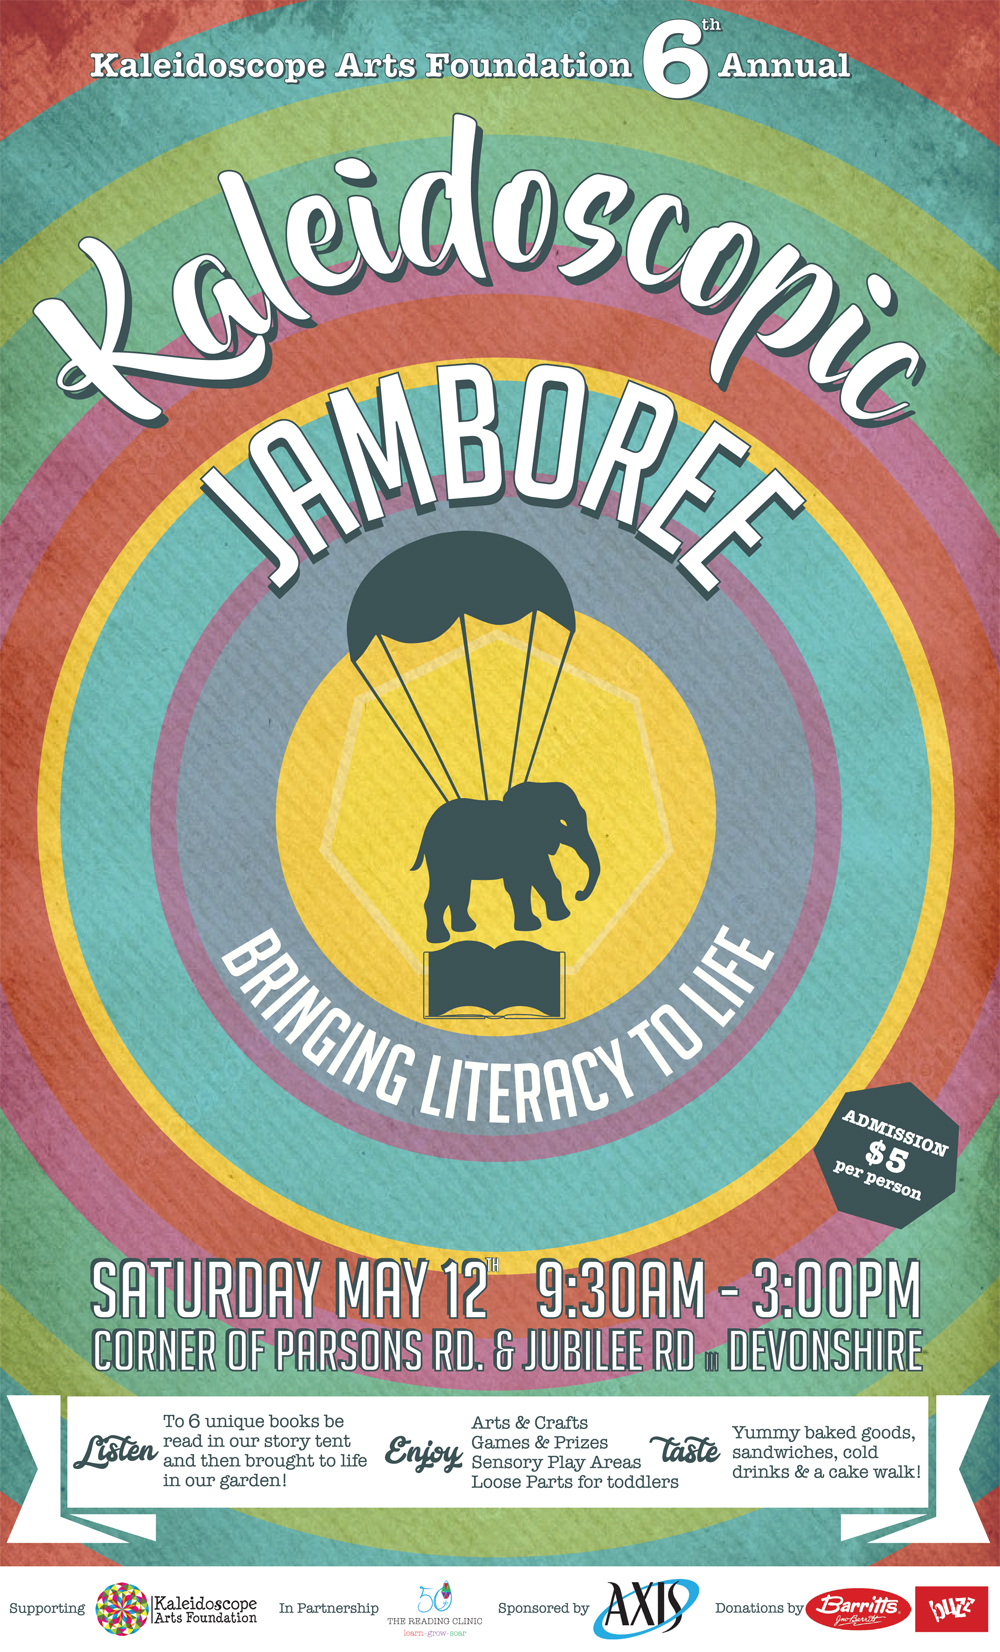 KAF Jamboree Flyer - FINAL